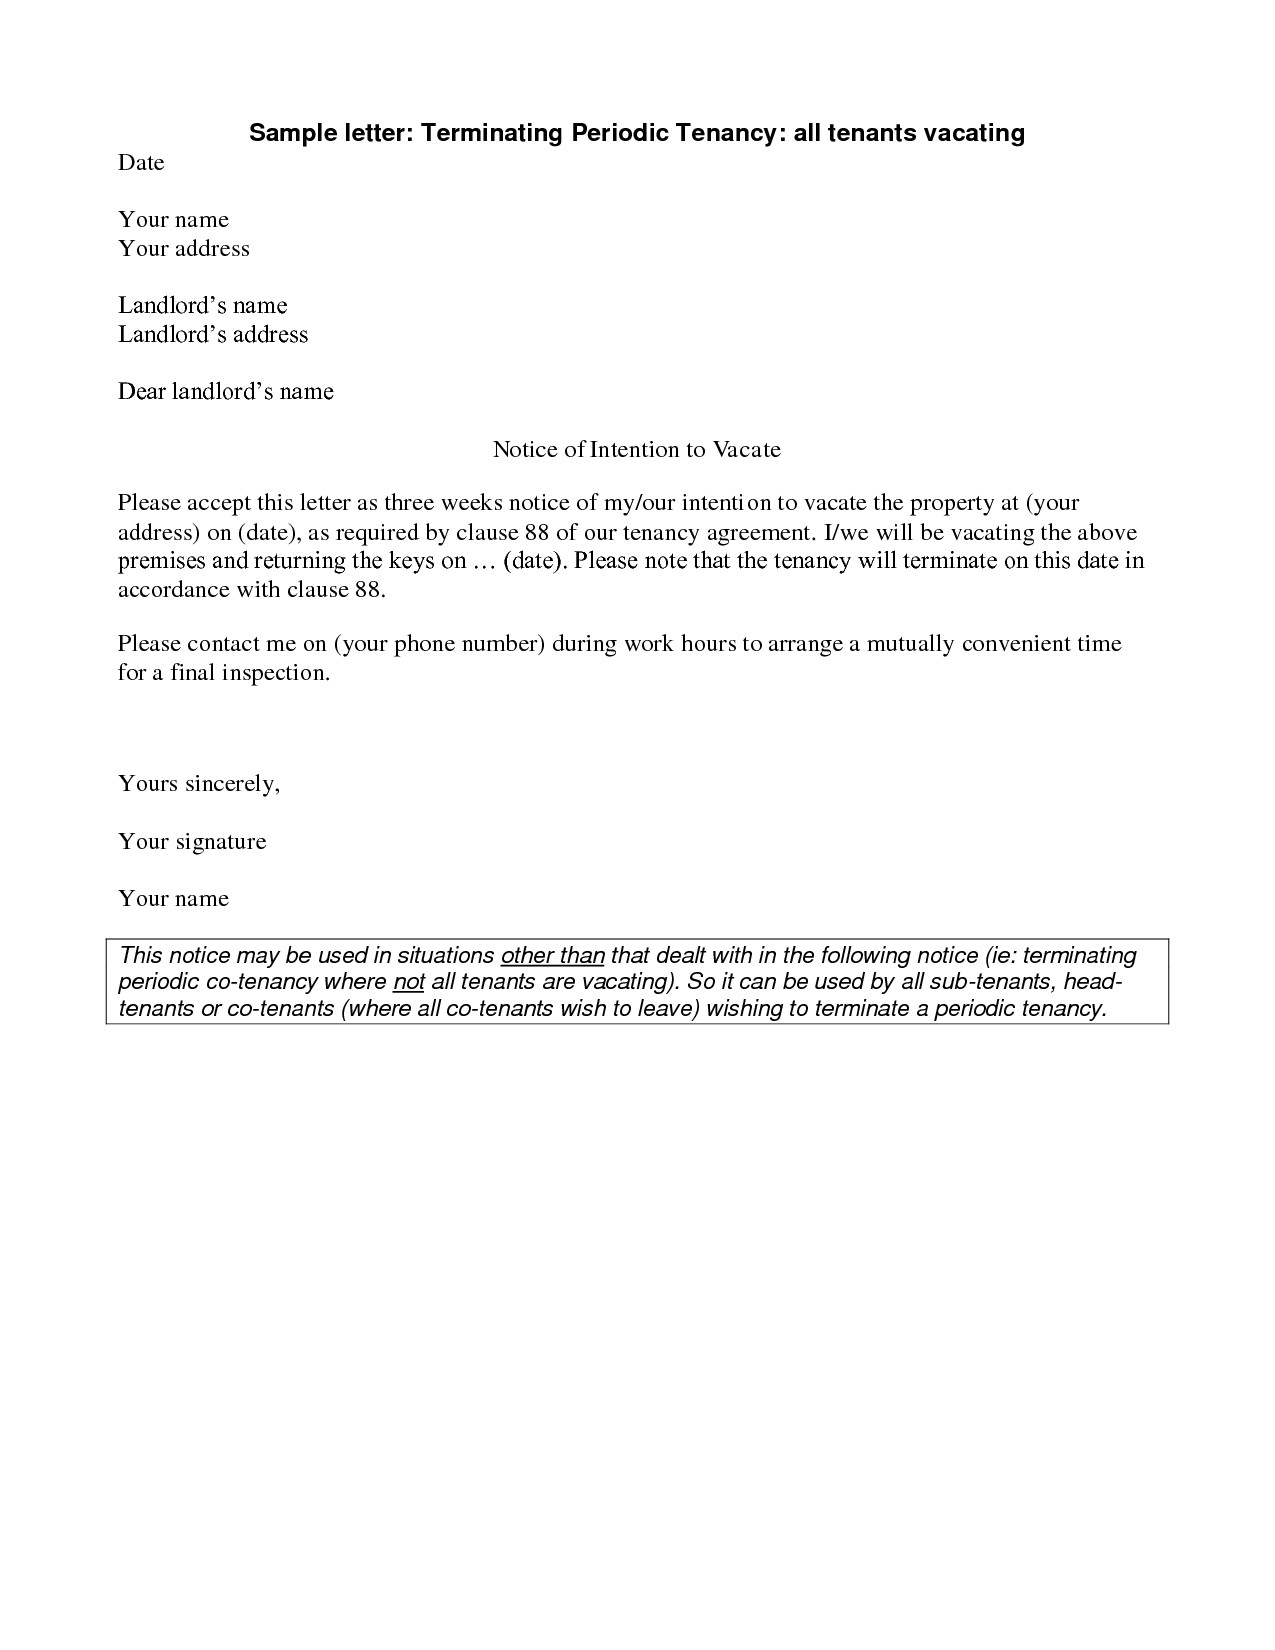 Property Inspection Letter to Tenant Template - Landlord End Tenancy Letter Template